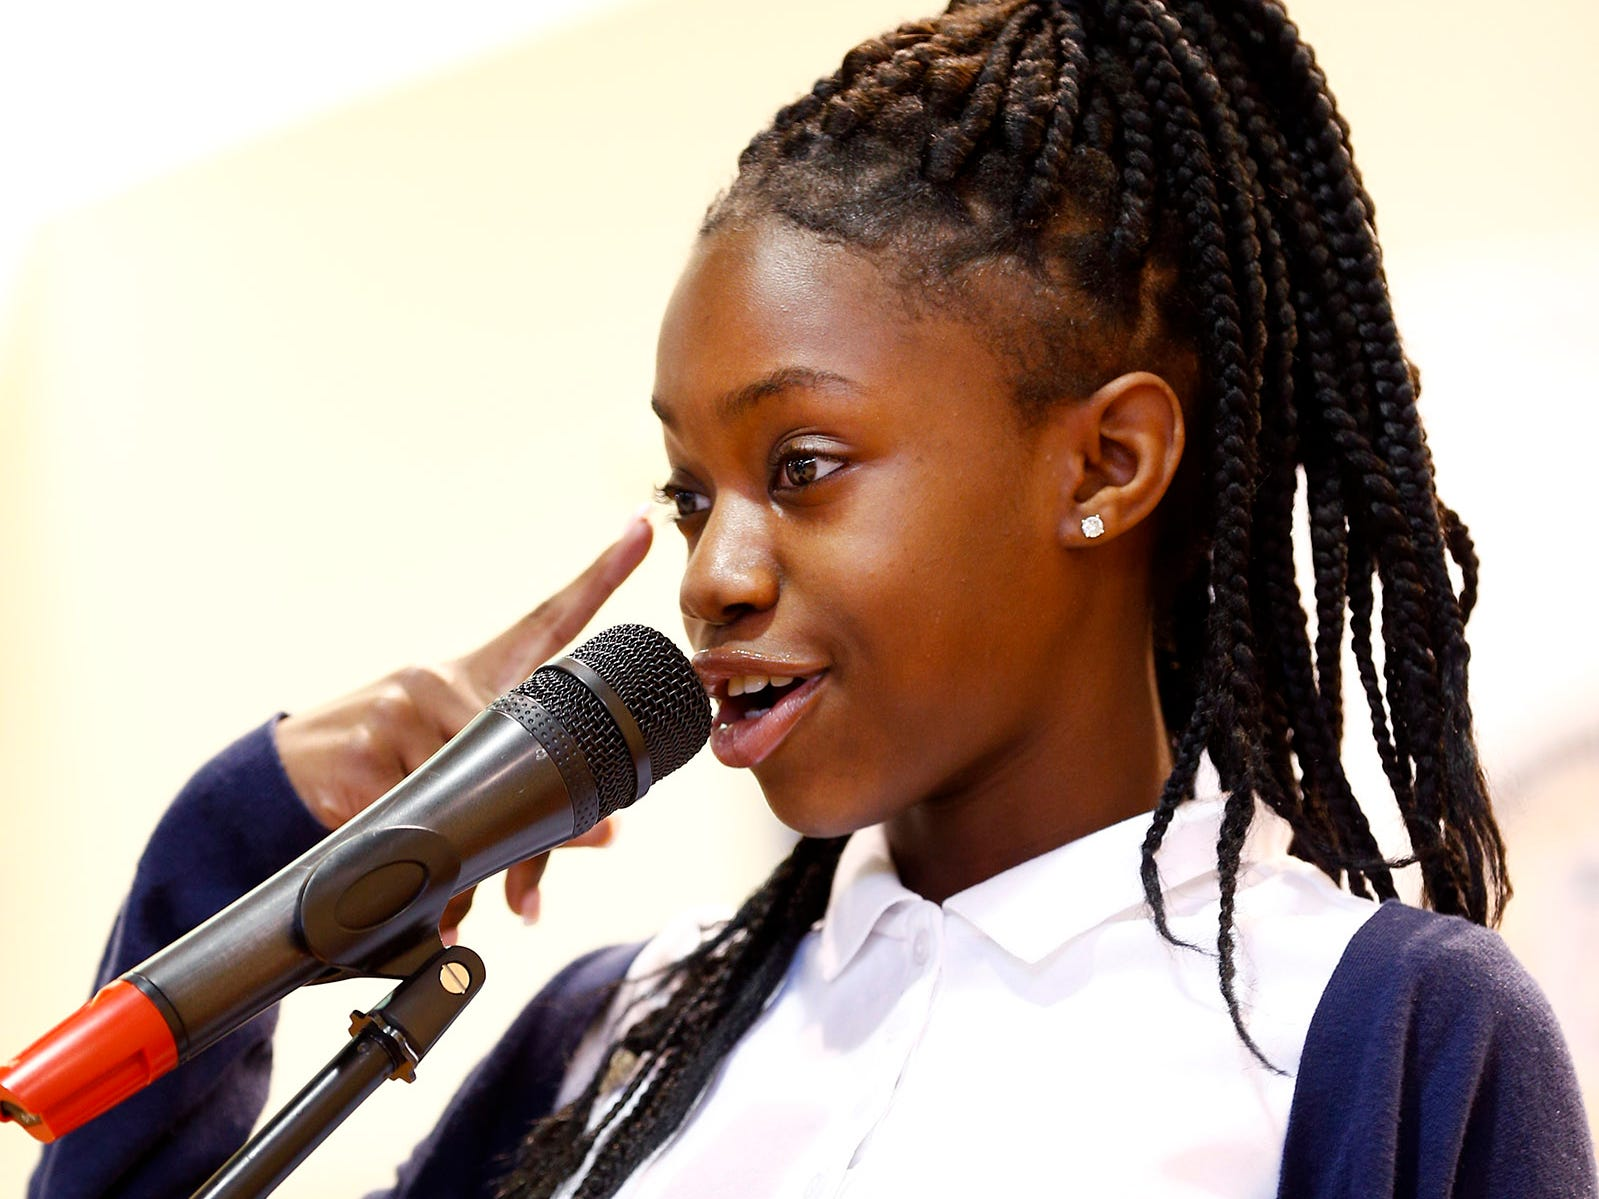 Sisters Academy 5th grader Sanai Tillman recites a poem during the 8th Annual Miller Speaking Contest at the Asbury Park school Thursday, March 14, 2019.